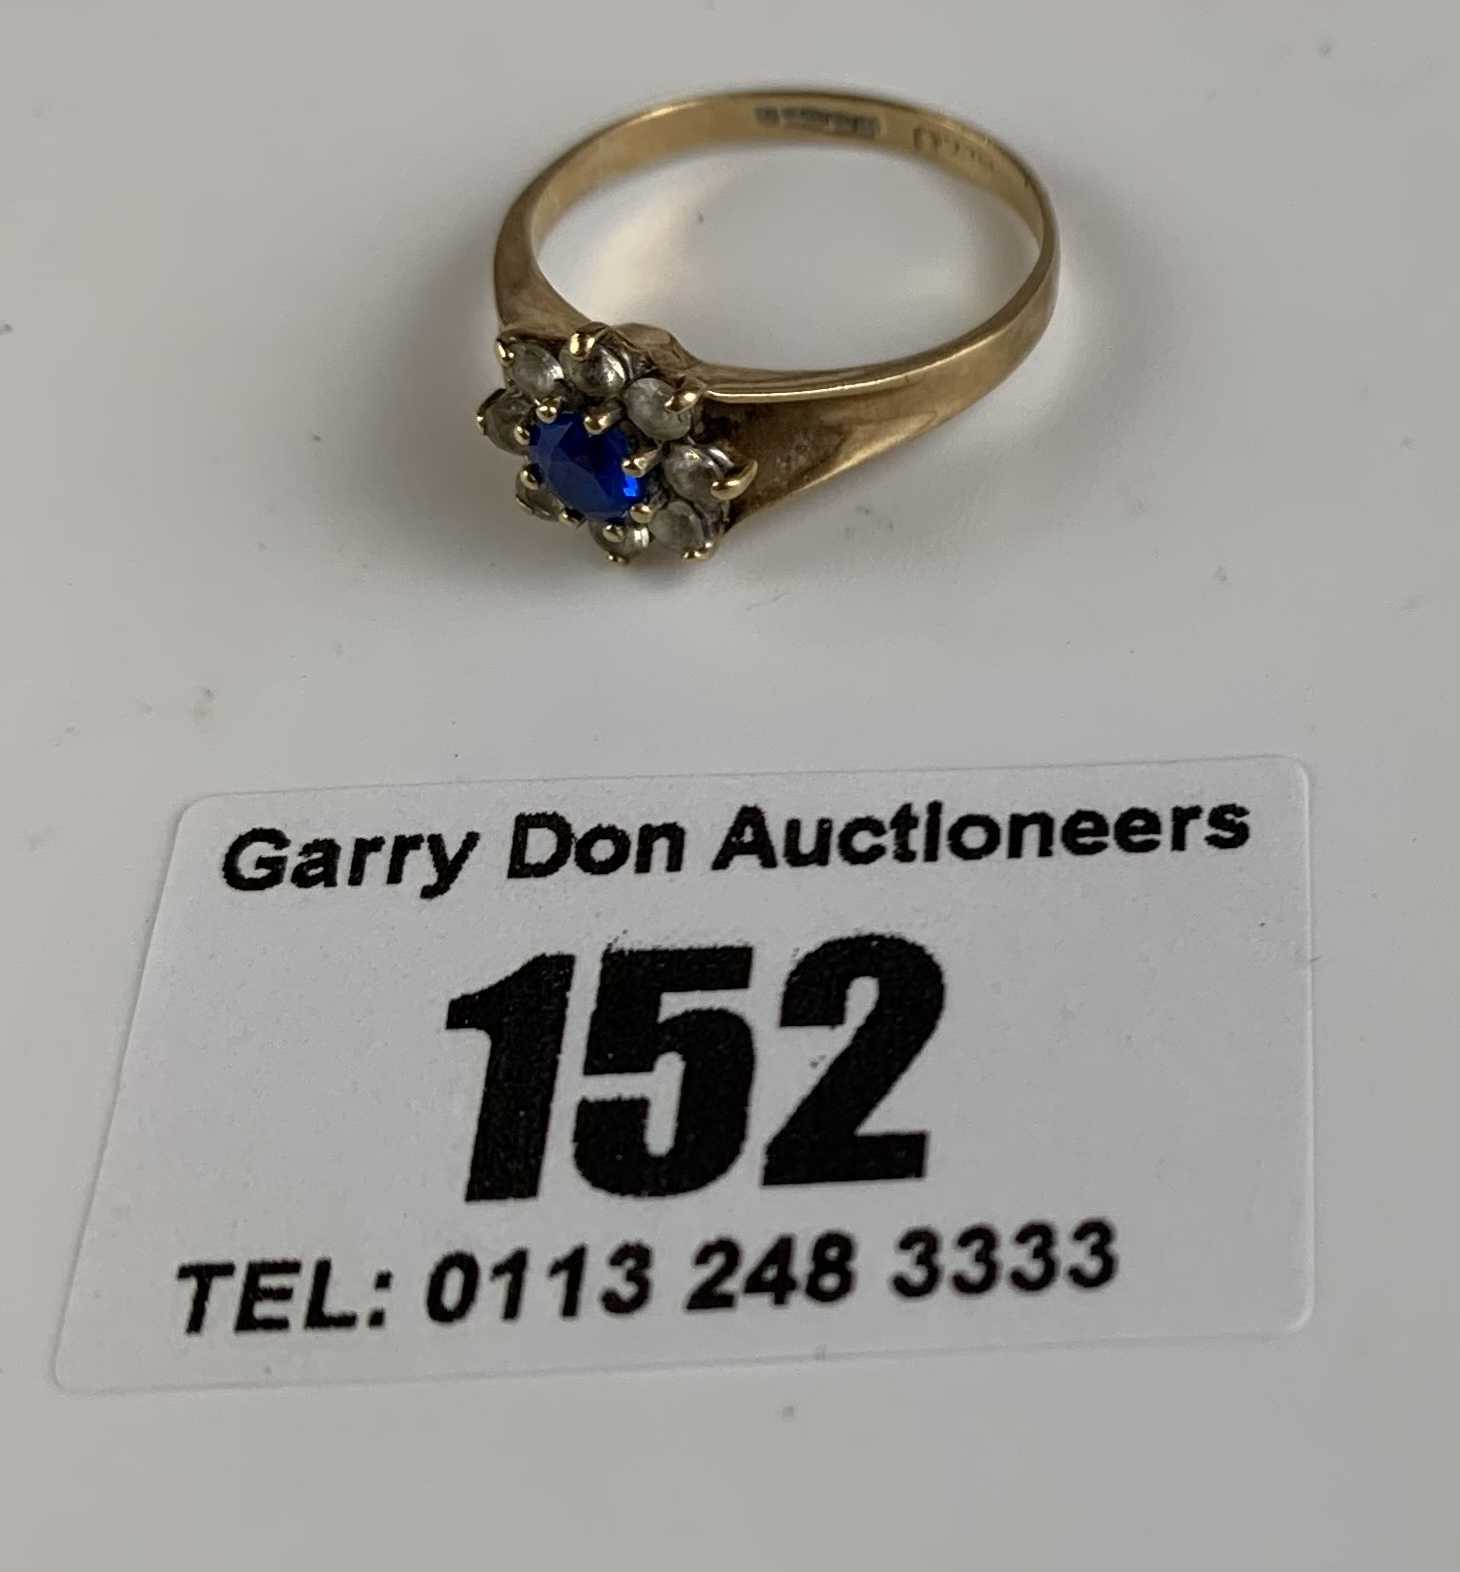 9k gold ring with blue and white stones, size K/L, w: 2 gms